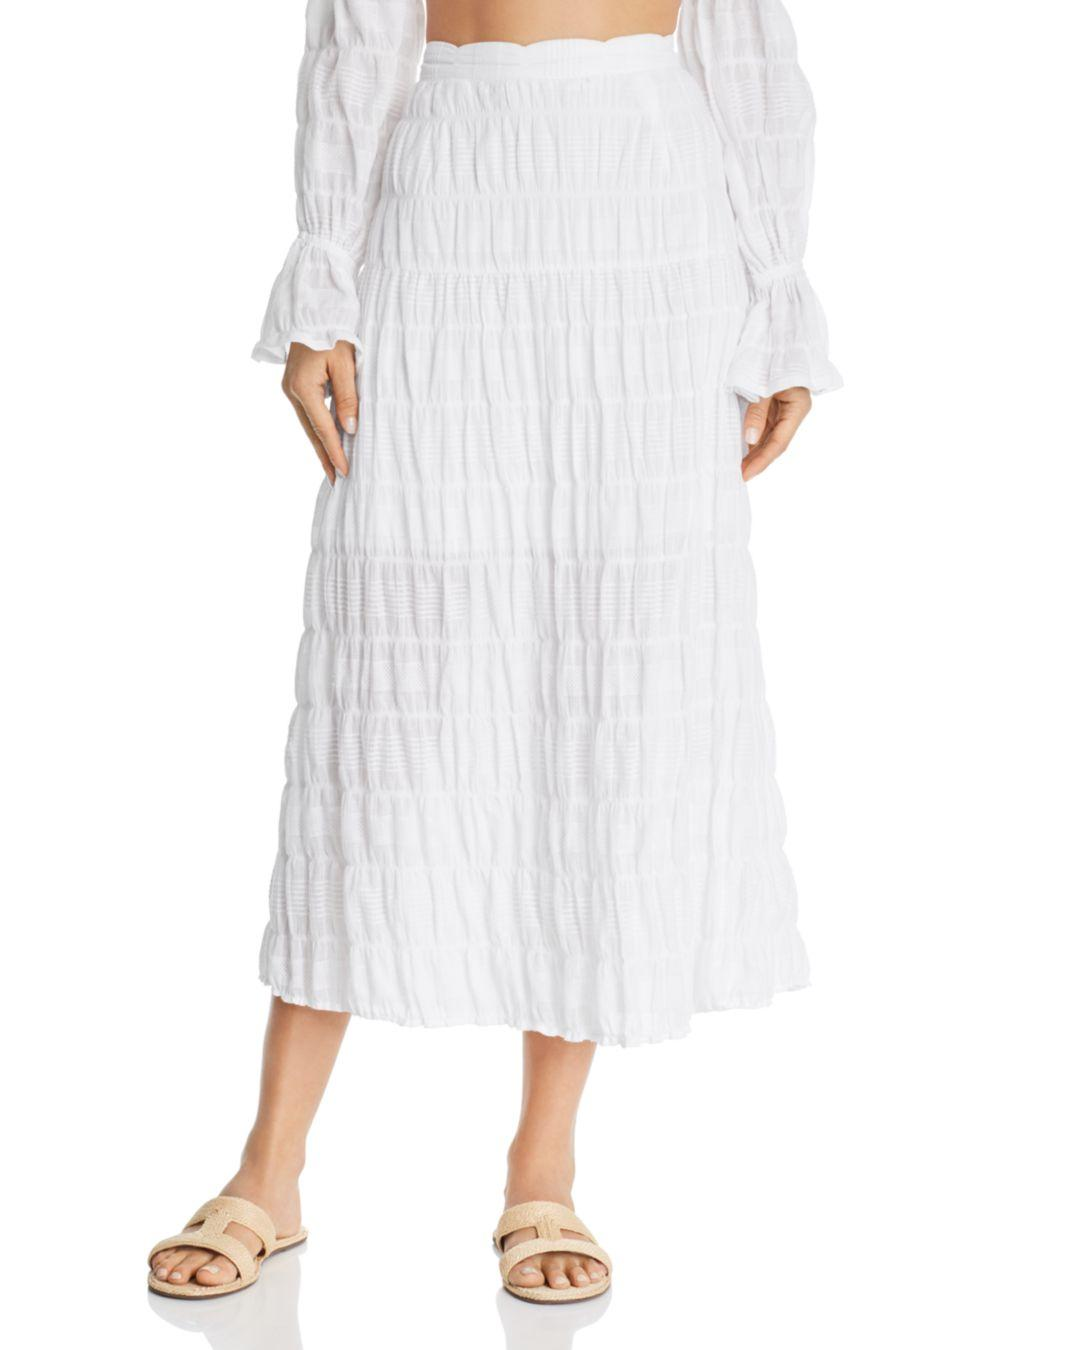 288374b9d2 Suboo Daydreamer Maxi Skirt in White - Lyst